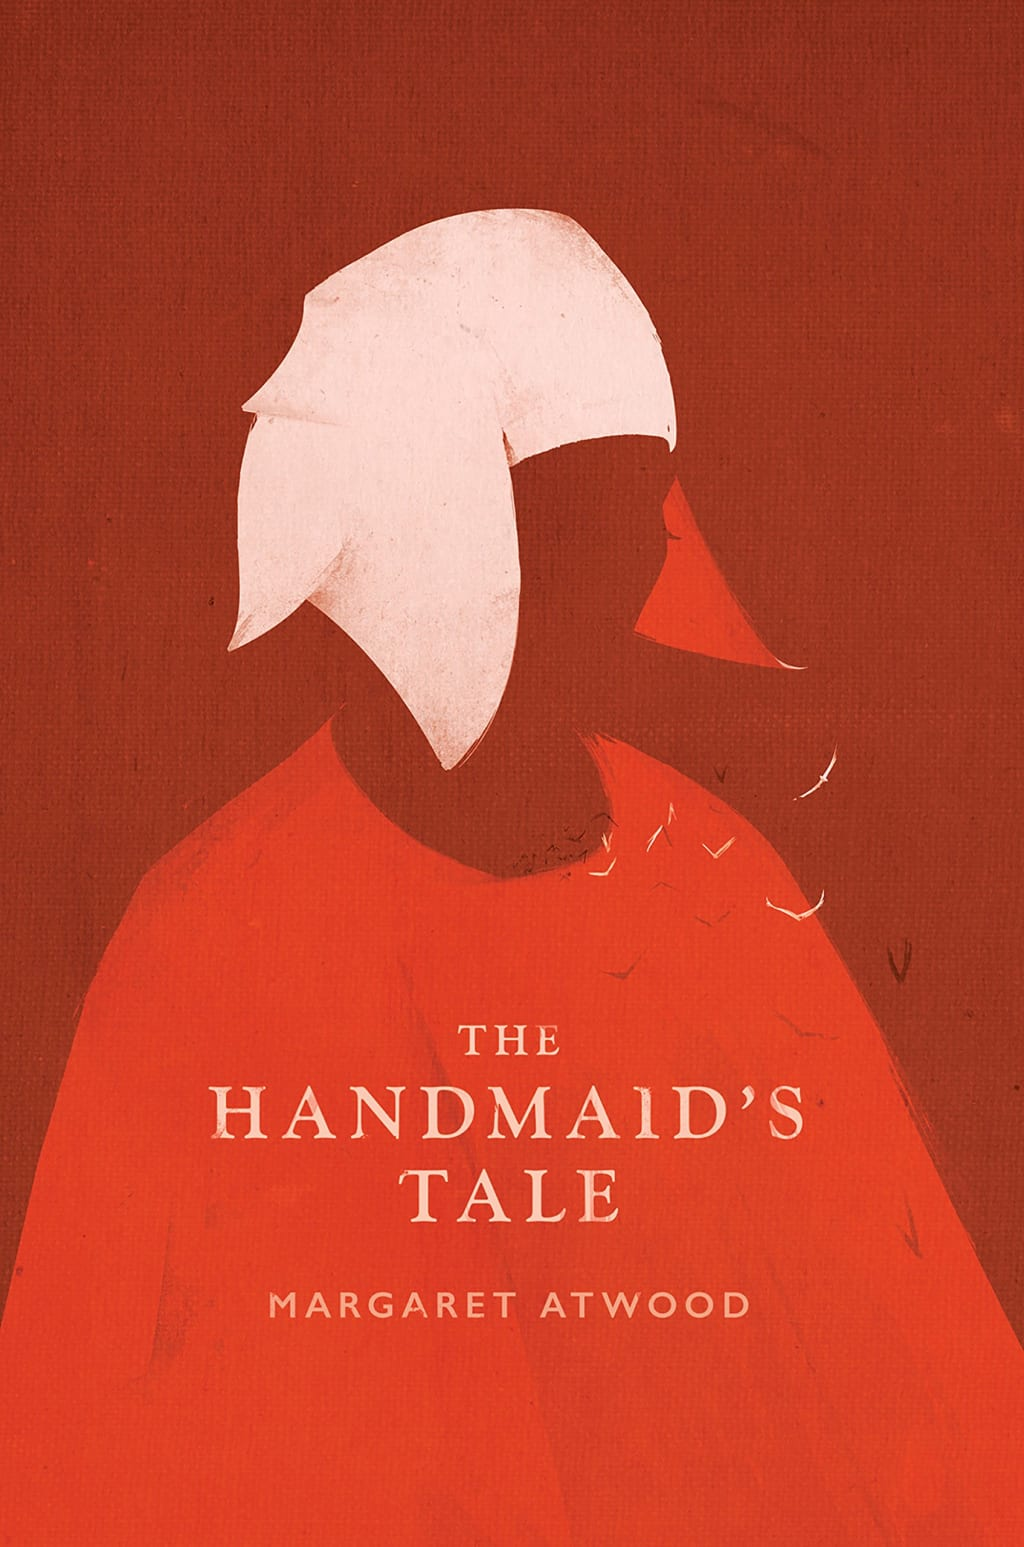 'The Handmaid's Tale' Analysis: Chapters 12-14